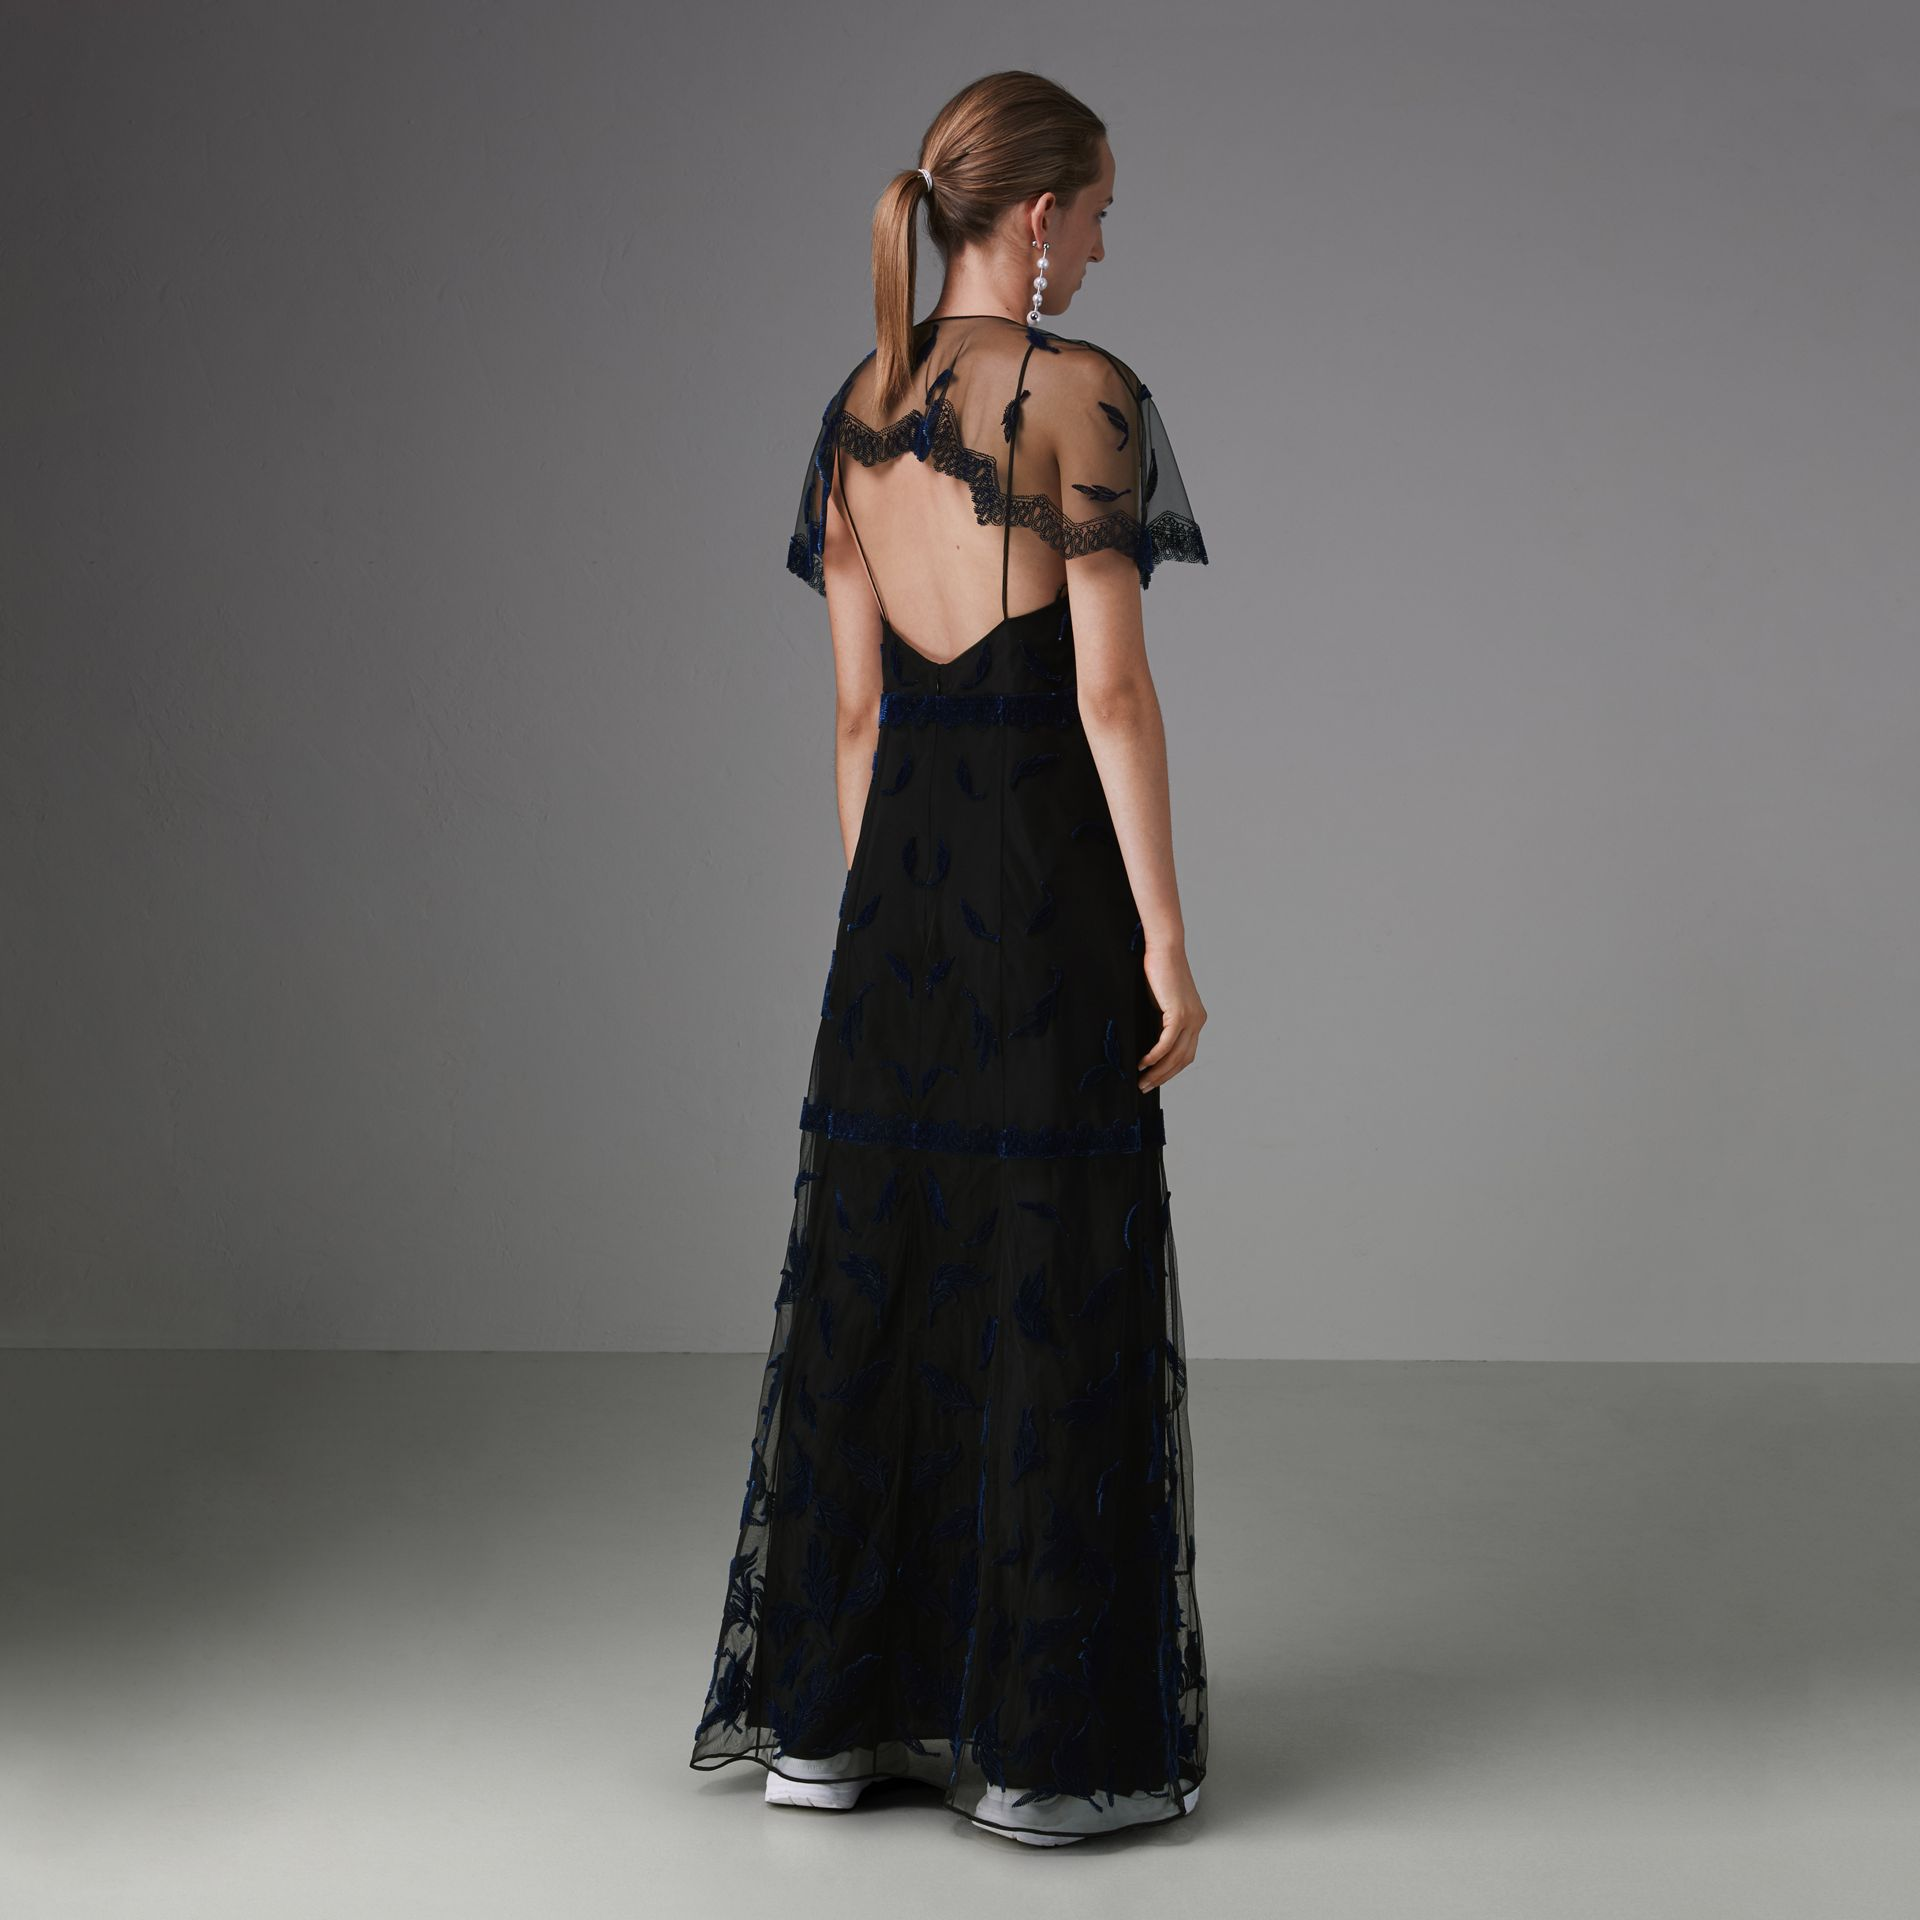 Velvet Leaf Cap-sleeve Gown in Black/blue - Women | Burberry Singapore - gallery image 2